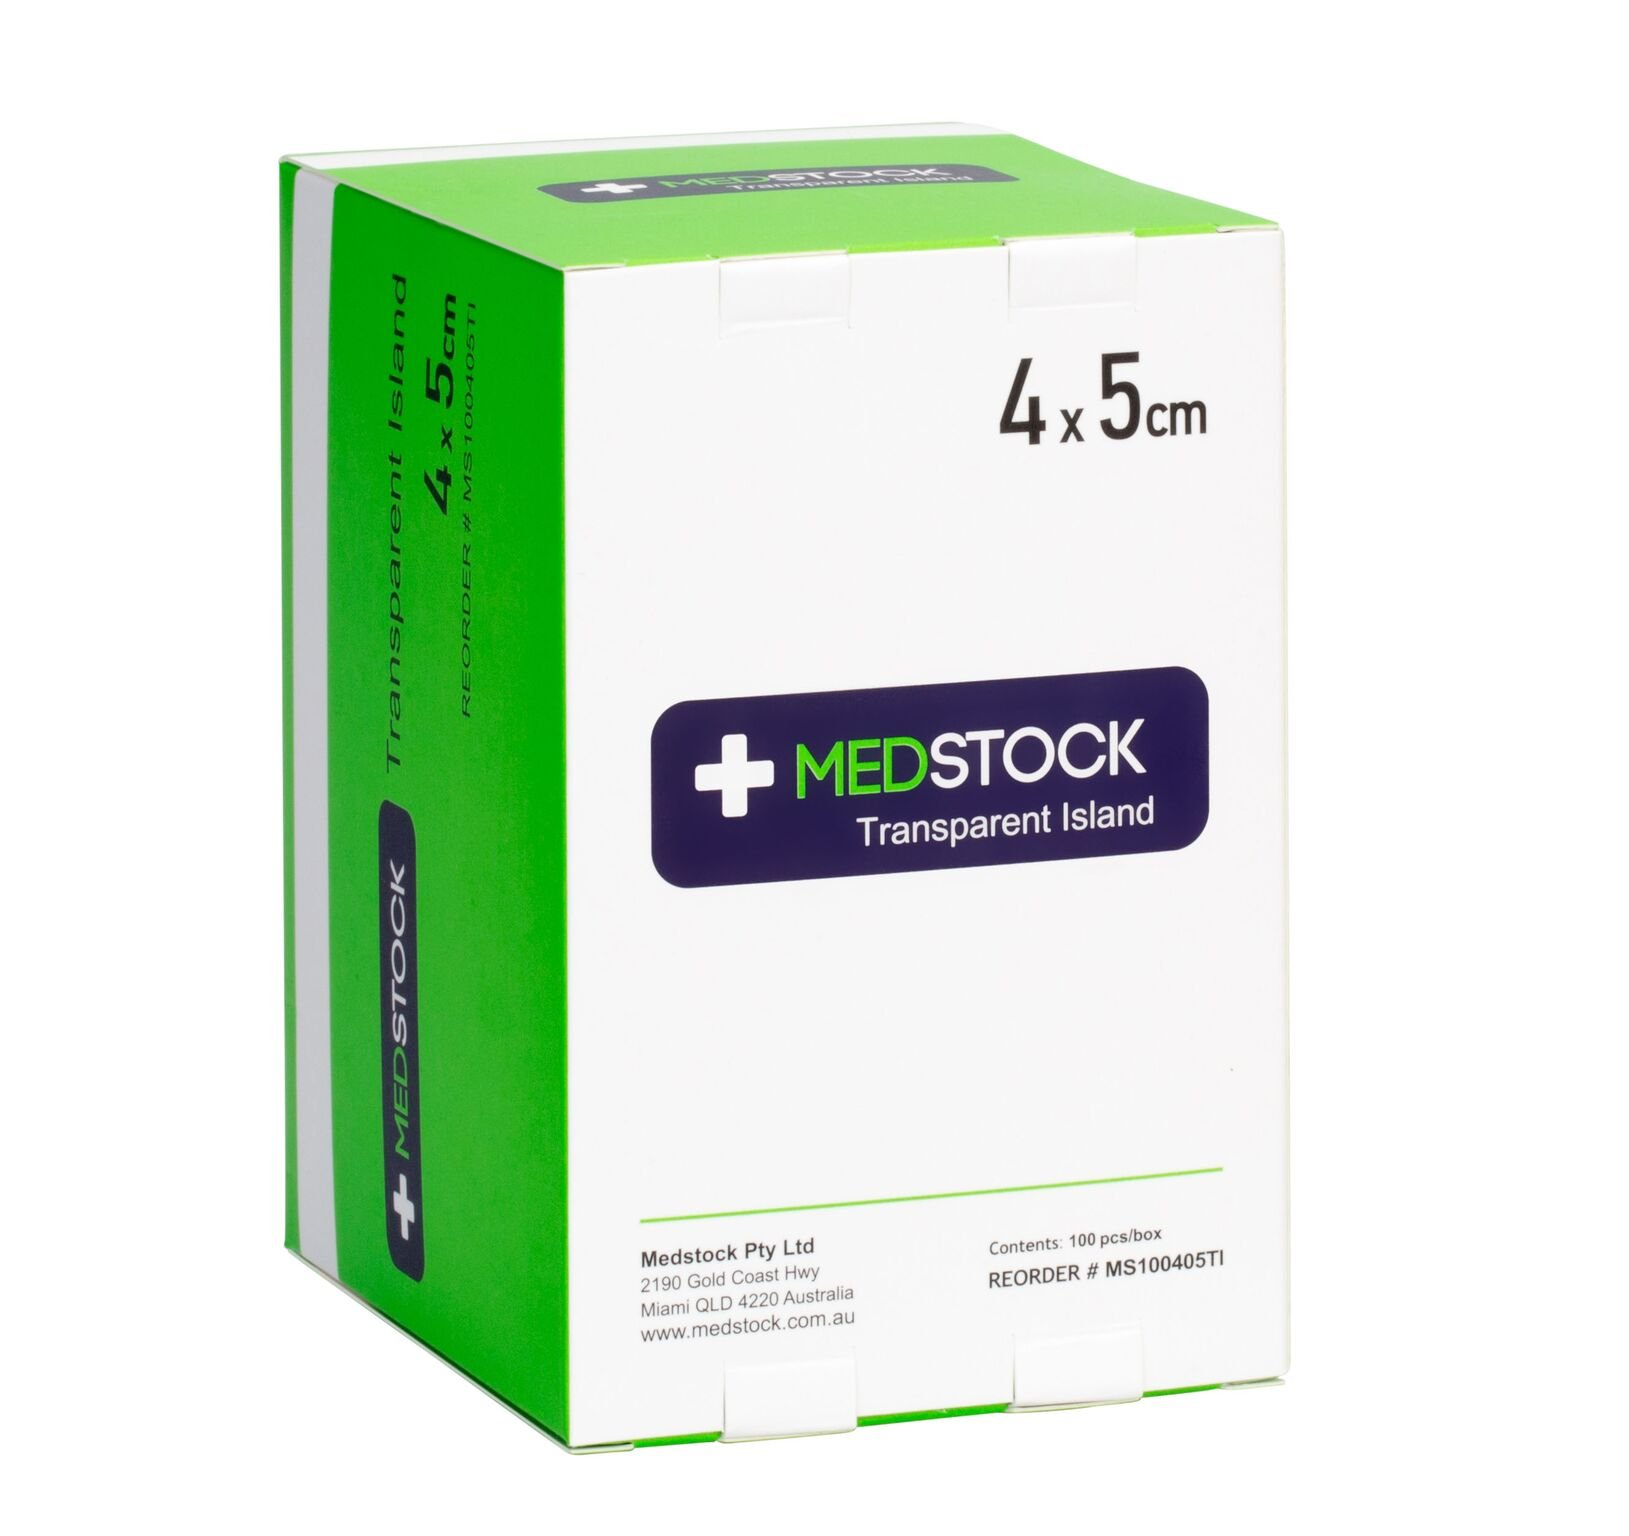 MEDSTOCK TRANSPARENT ISLAND DRESSING 4CM X 5CM, BOX 100